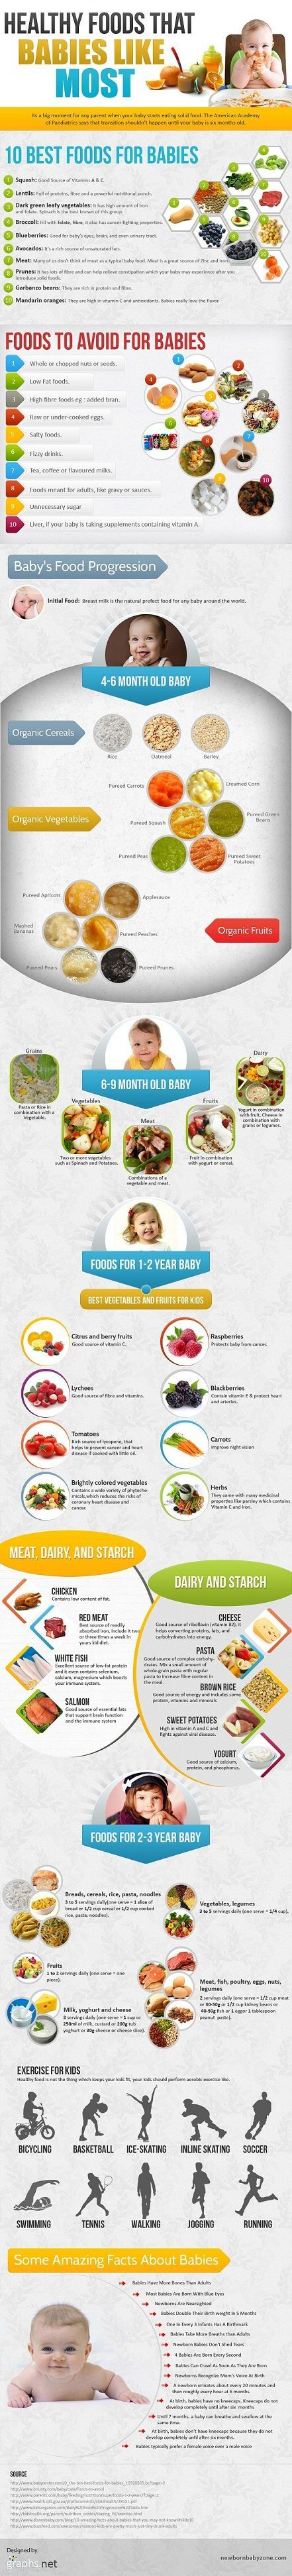 Healthy-Foods-That-Babies-Like-Most-Infographic-infographicsmania.jpg 441×3,888 pixels